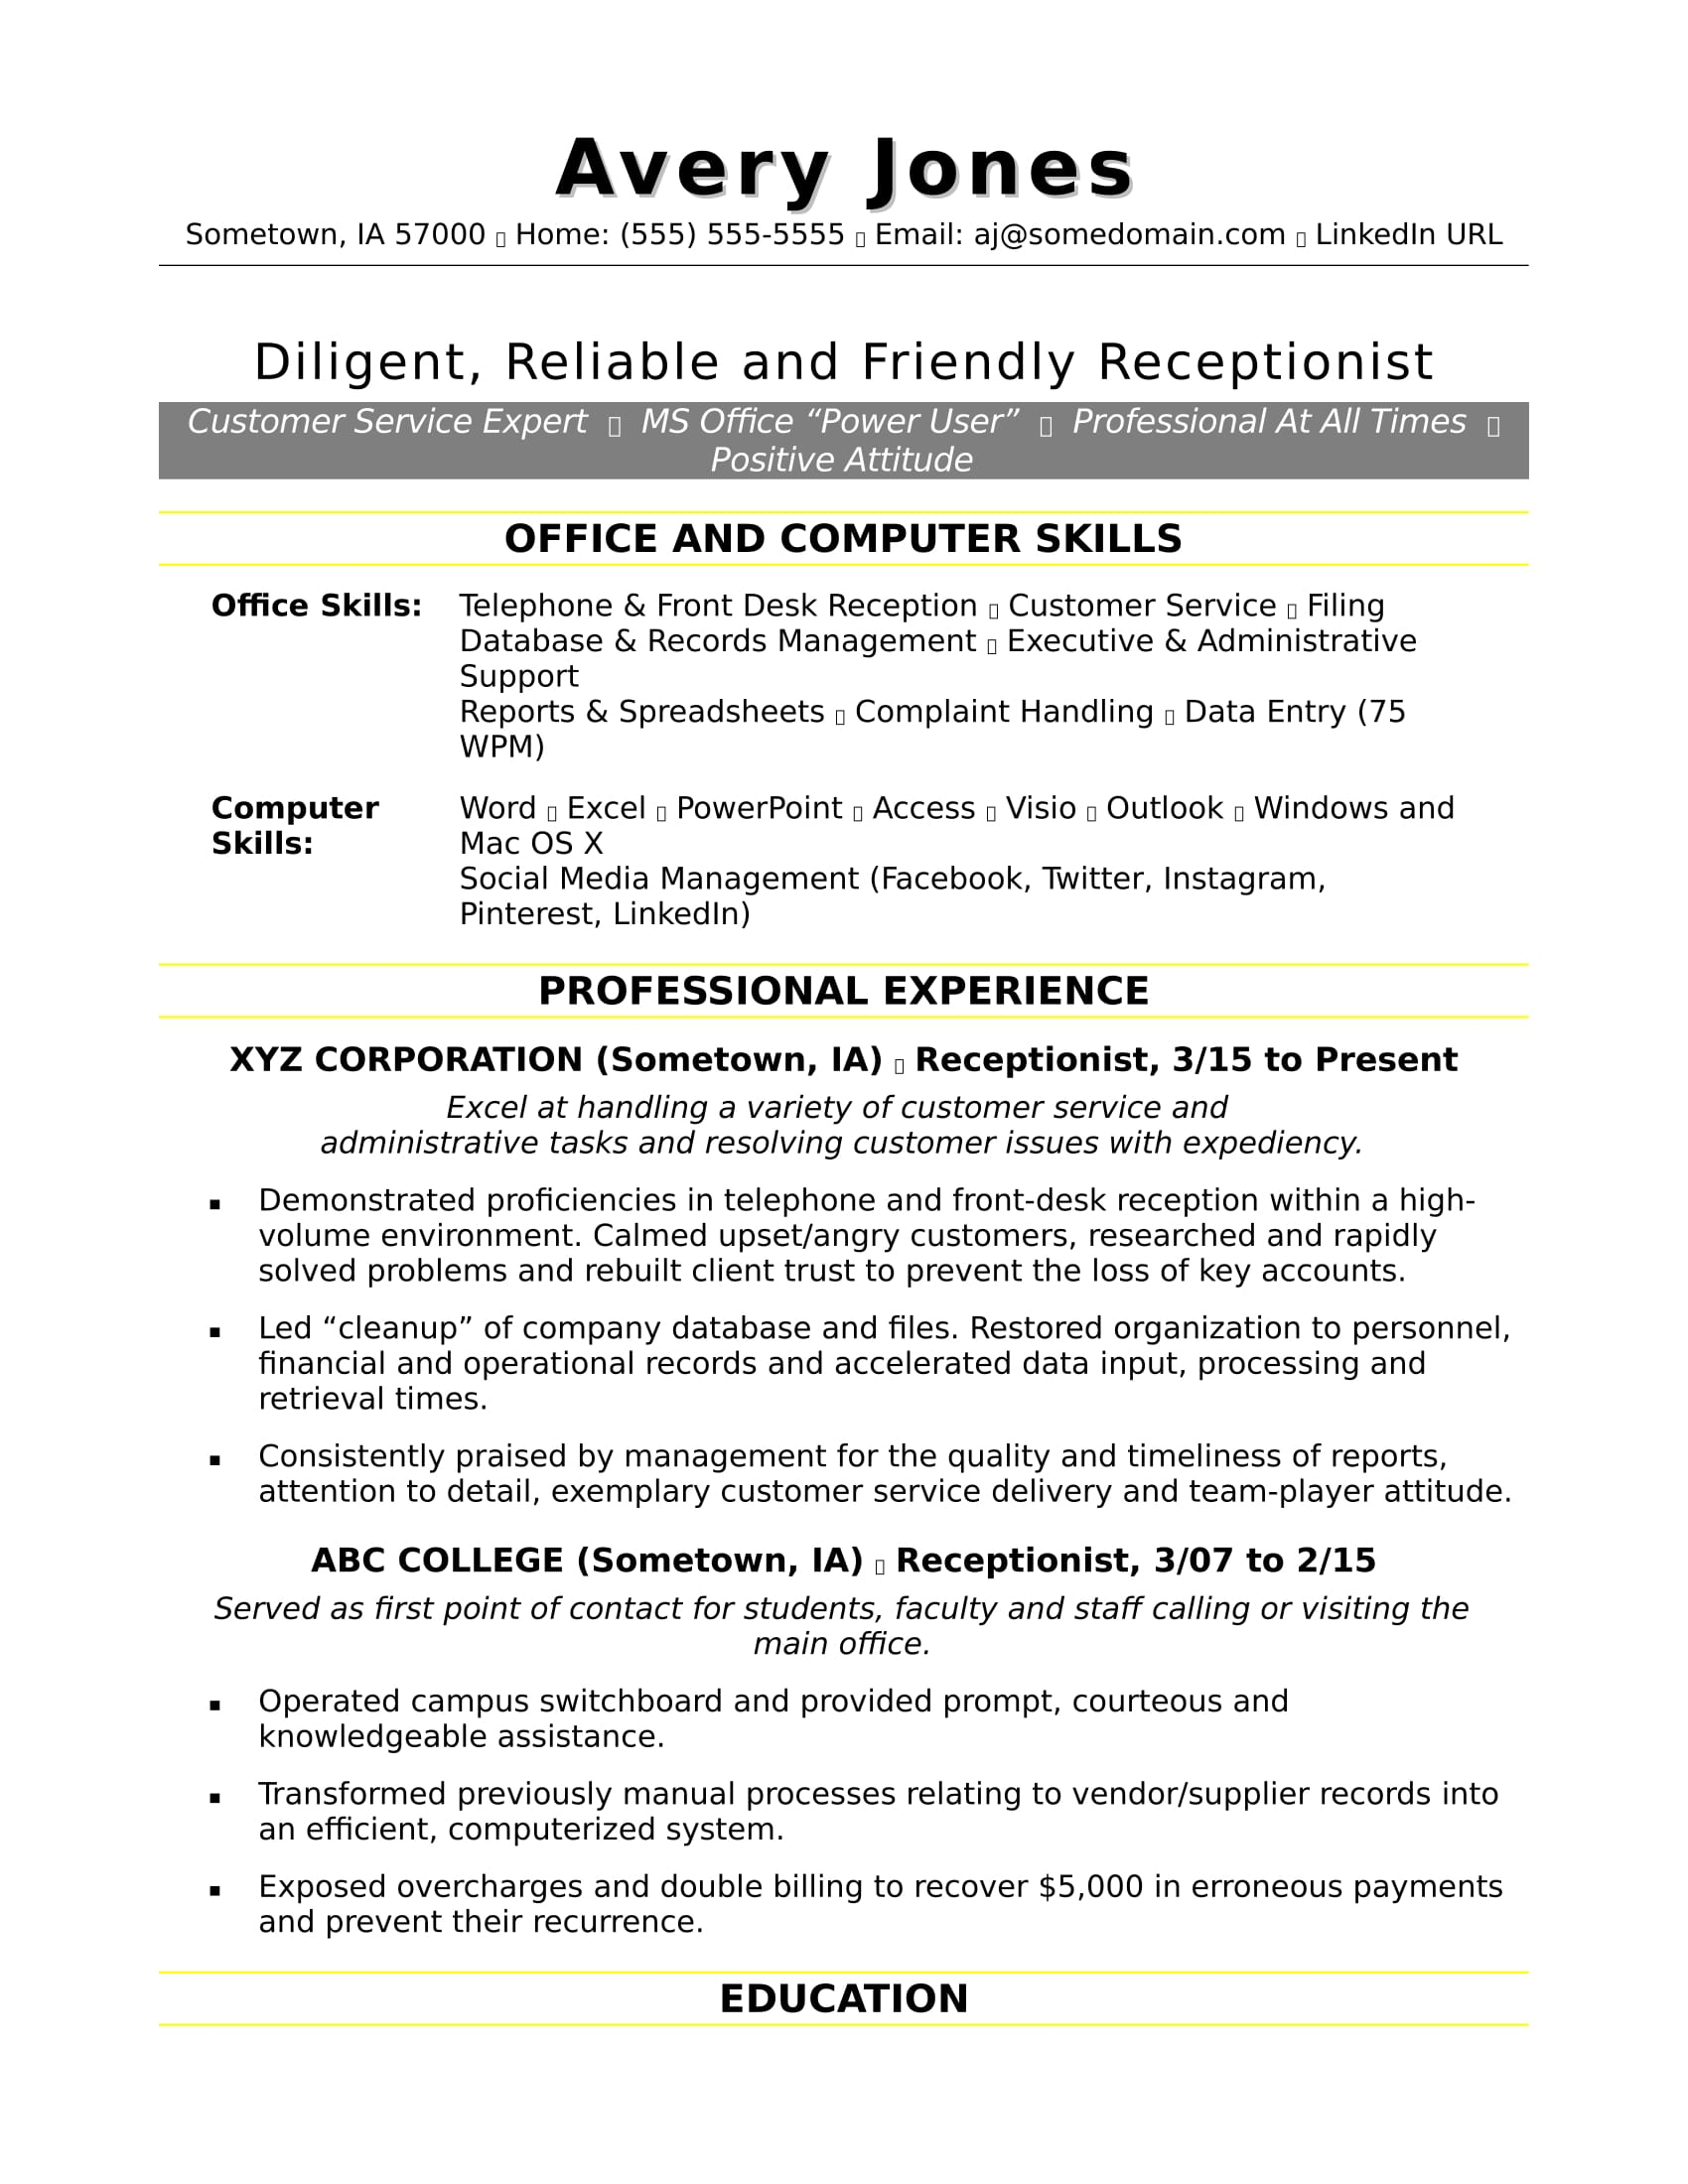 Sample Resume For A Receptionist  Key Skills To Put On Resume